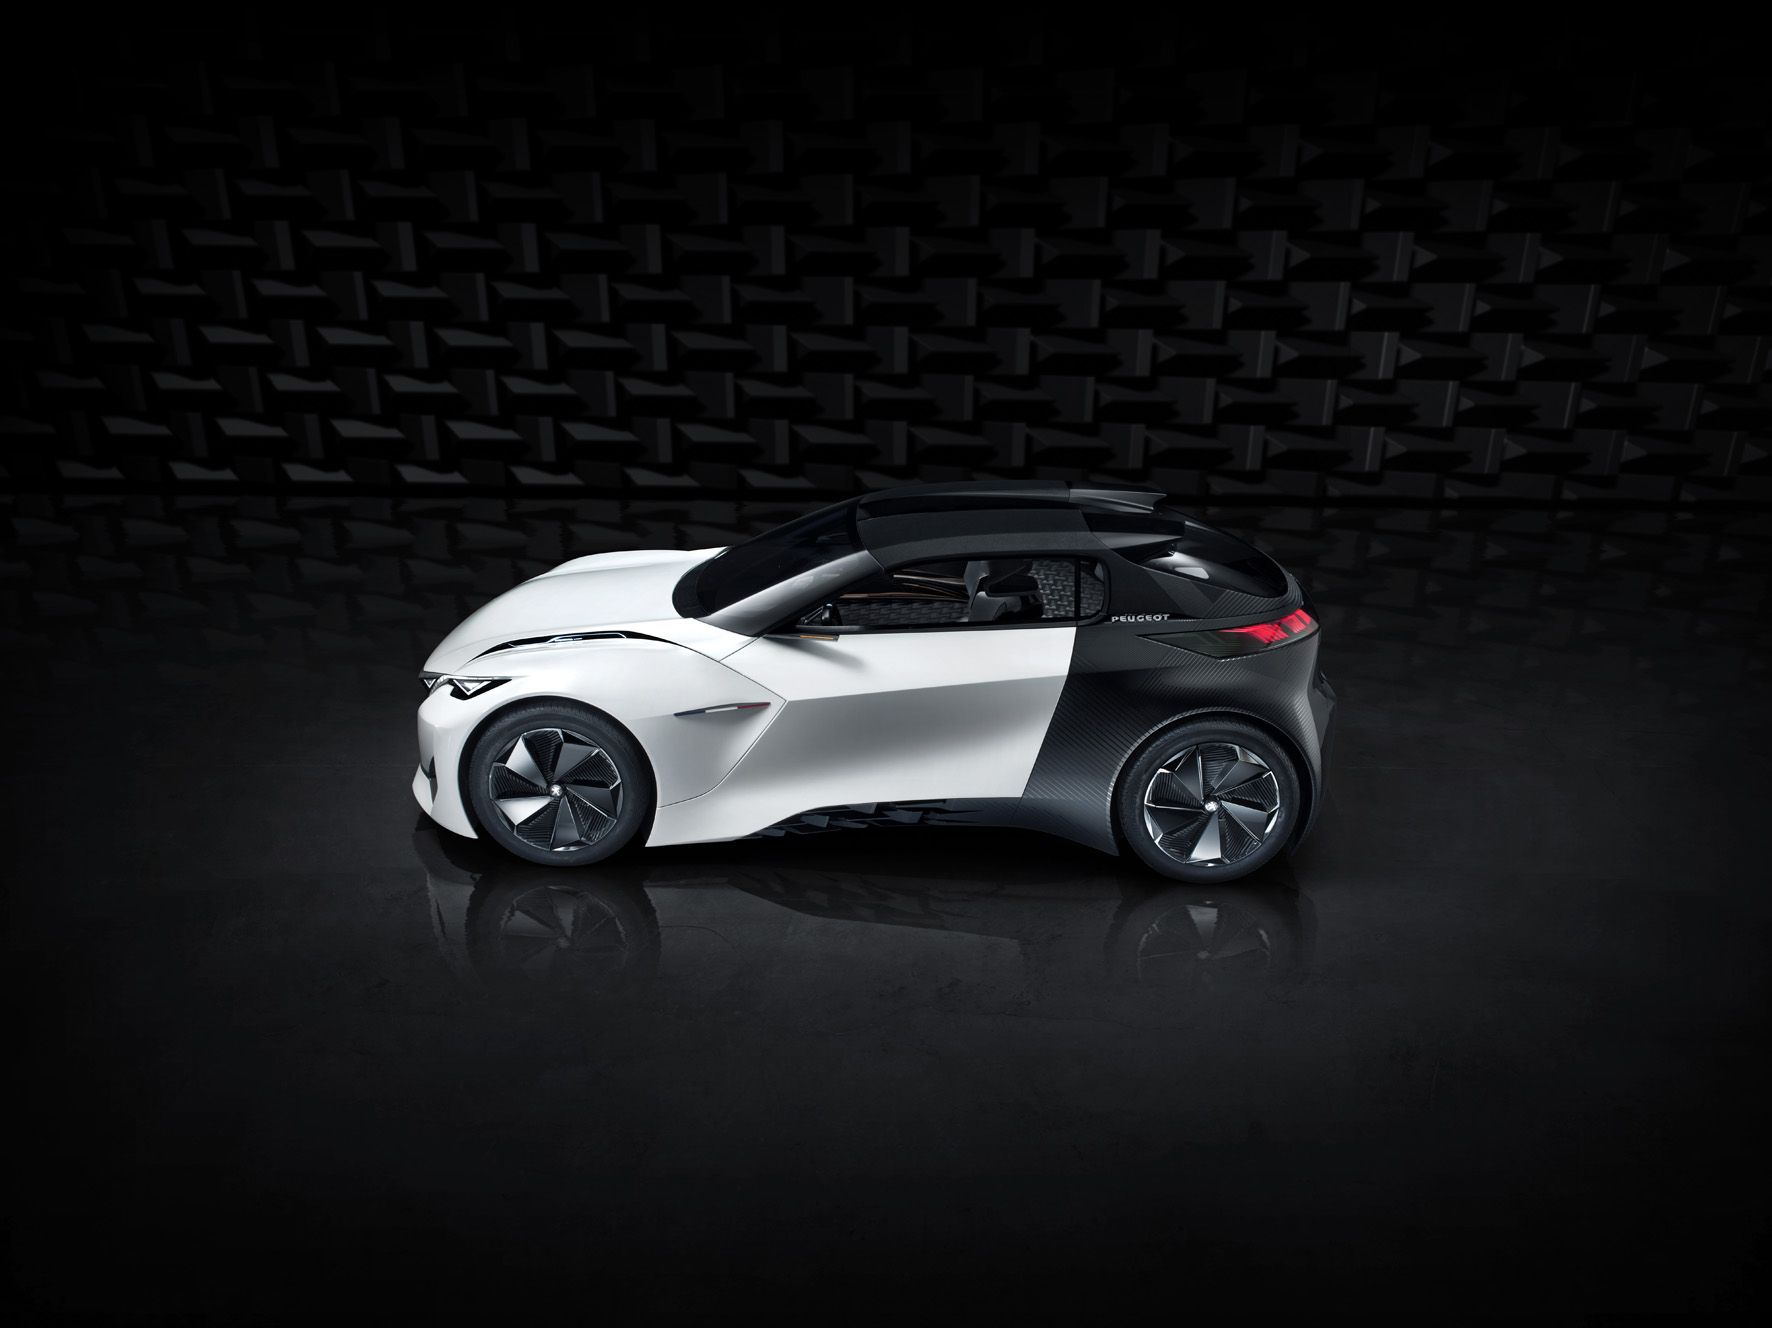 The Peugeot Fractal's styling also embodies the car's ease